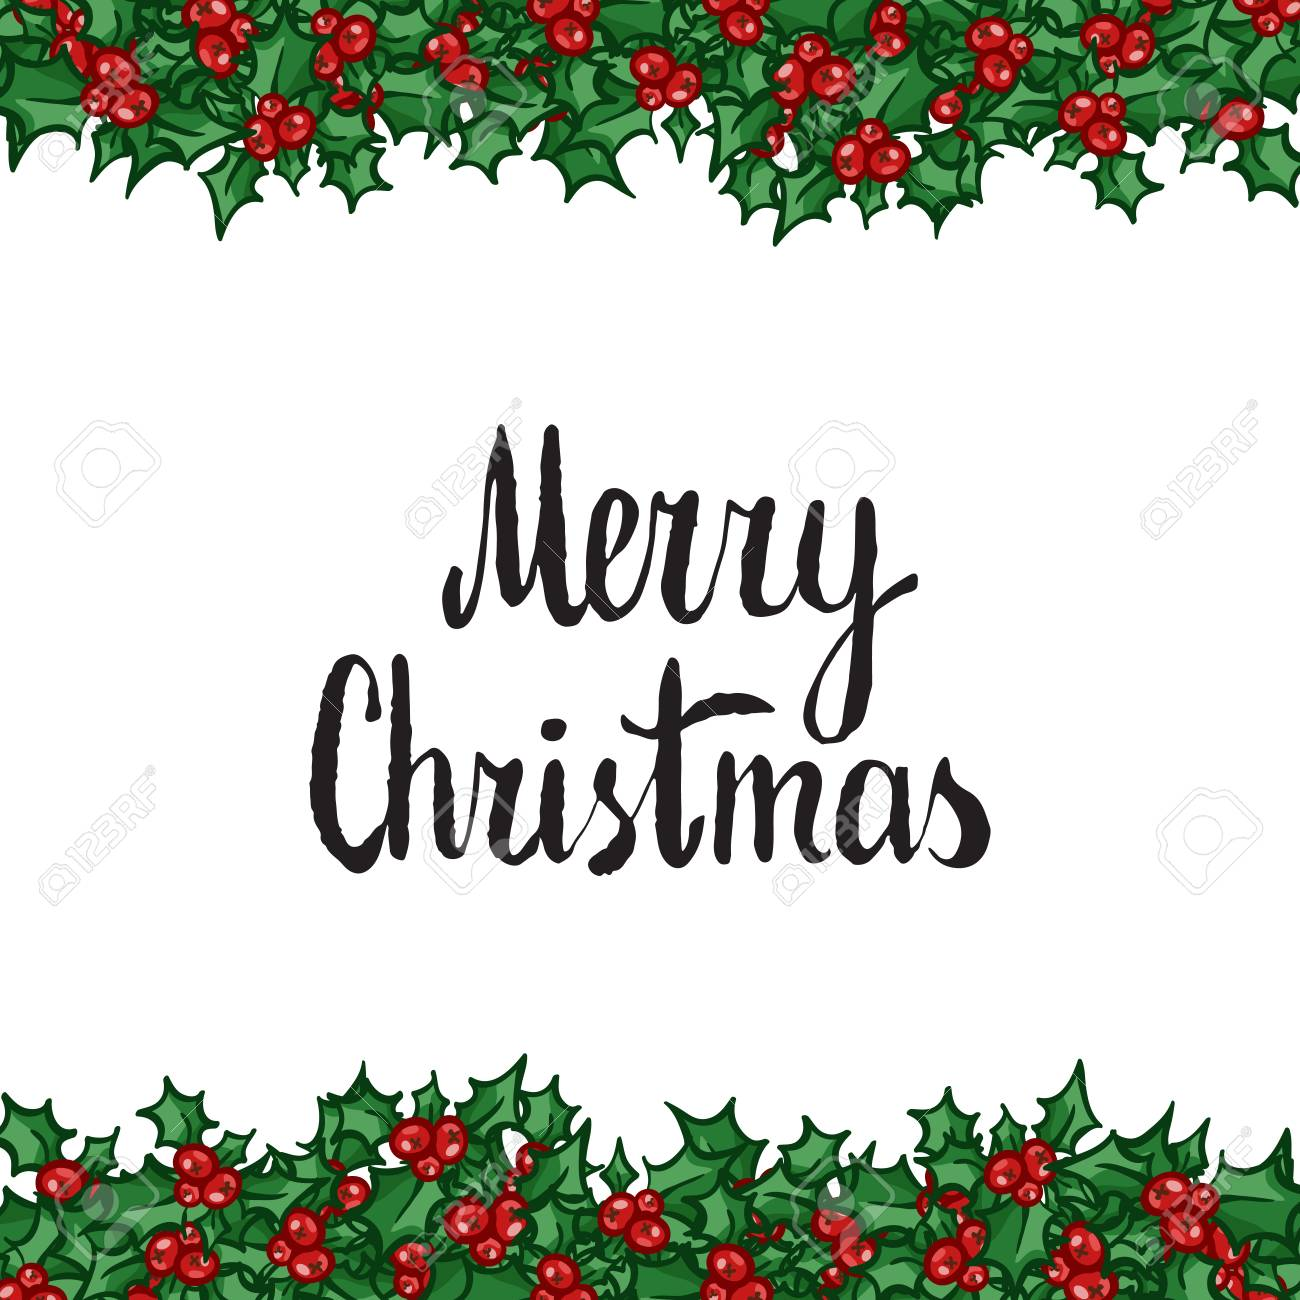 Merry Christmas Clip Art.Merry Christmas Lettering With Holly Hand Drawn Design Element